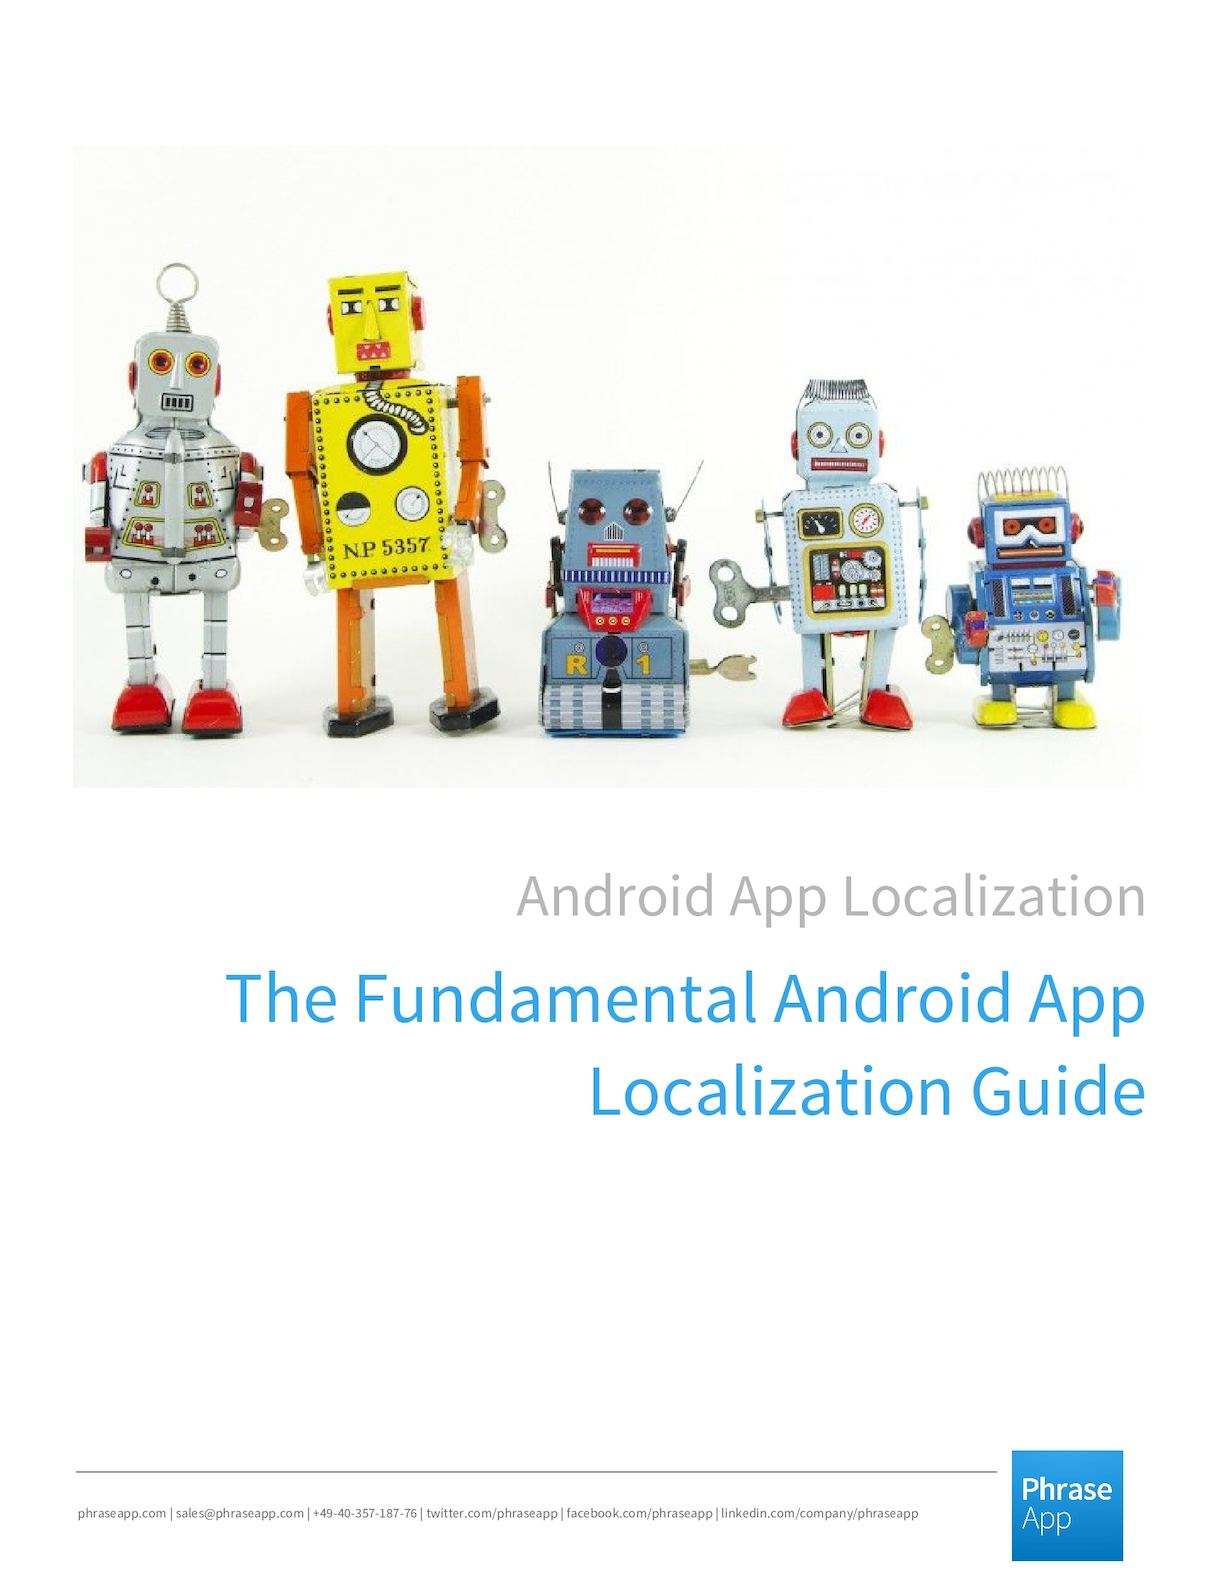 The Fundamental Android App Localization Guide